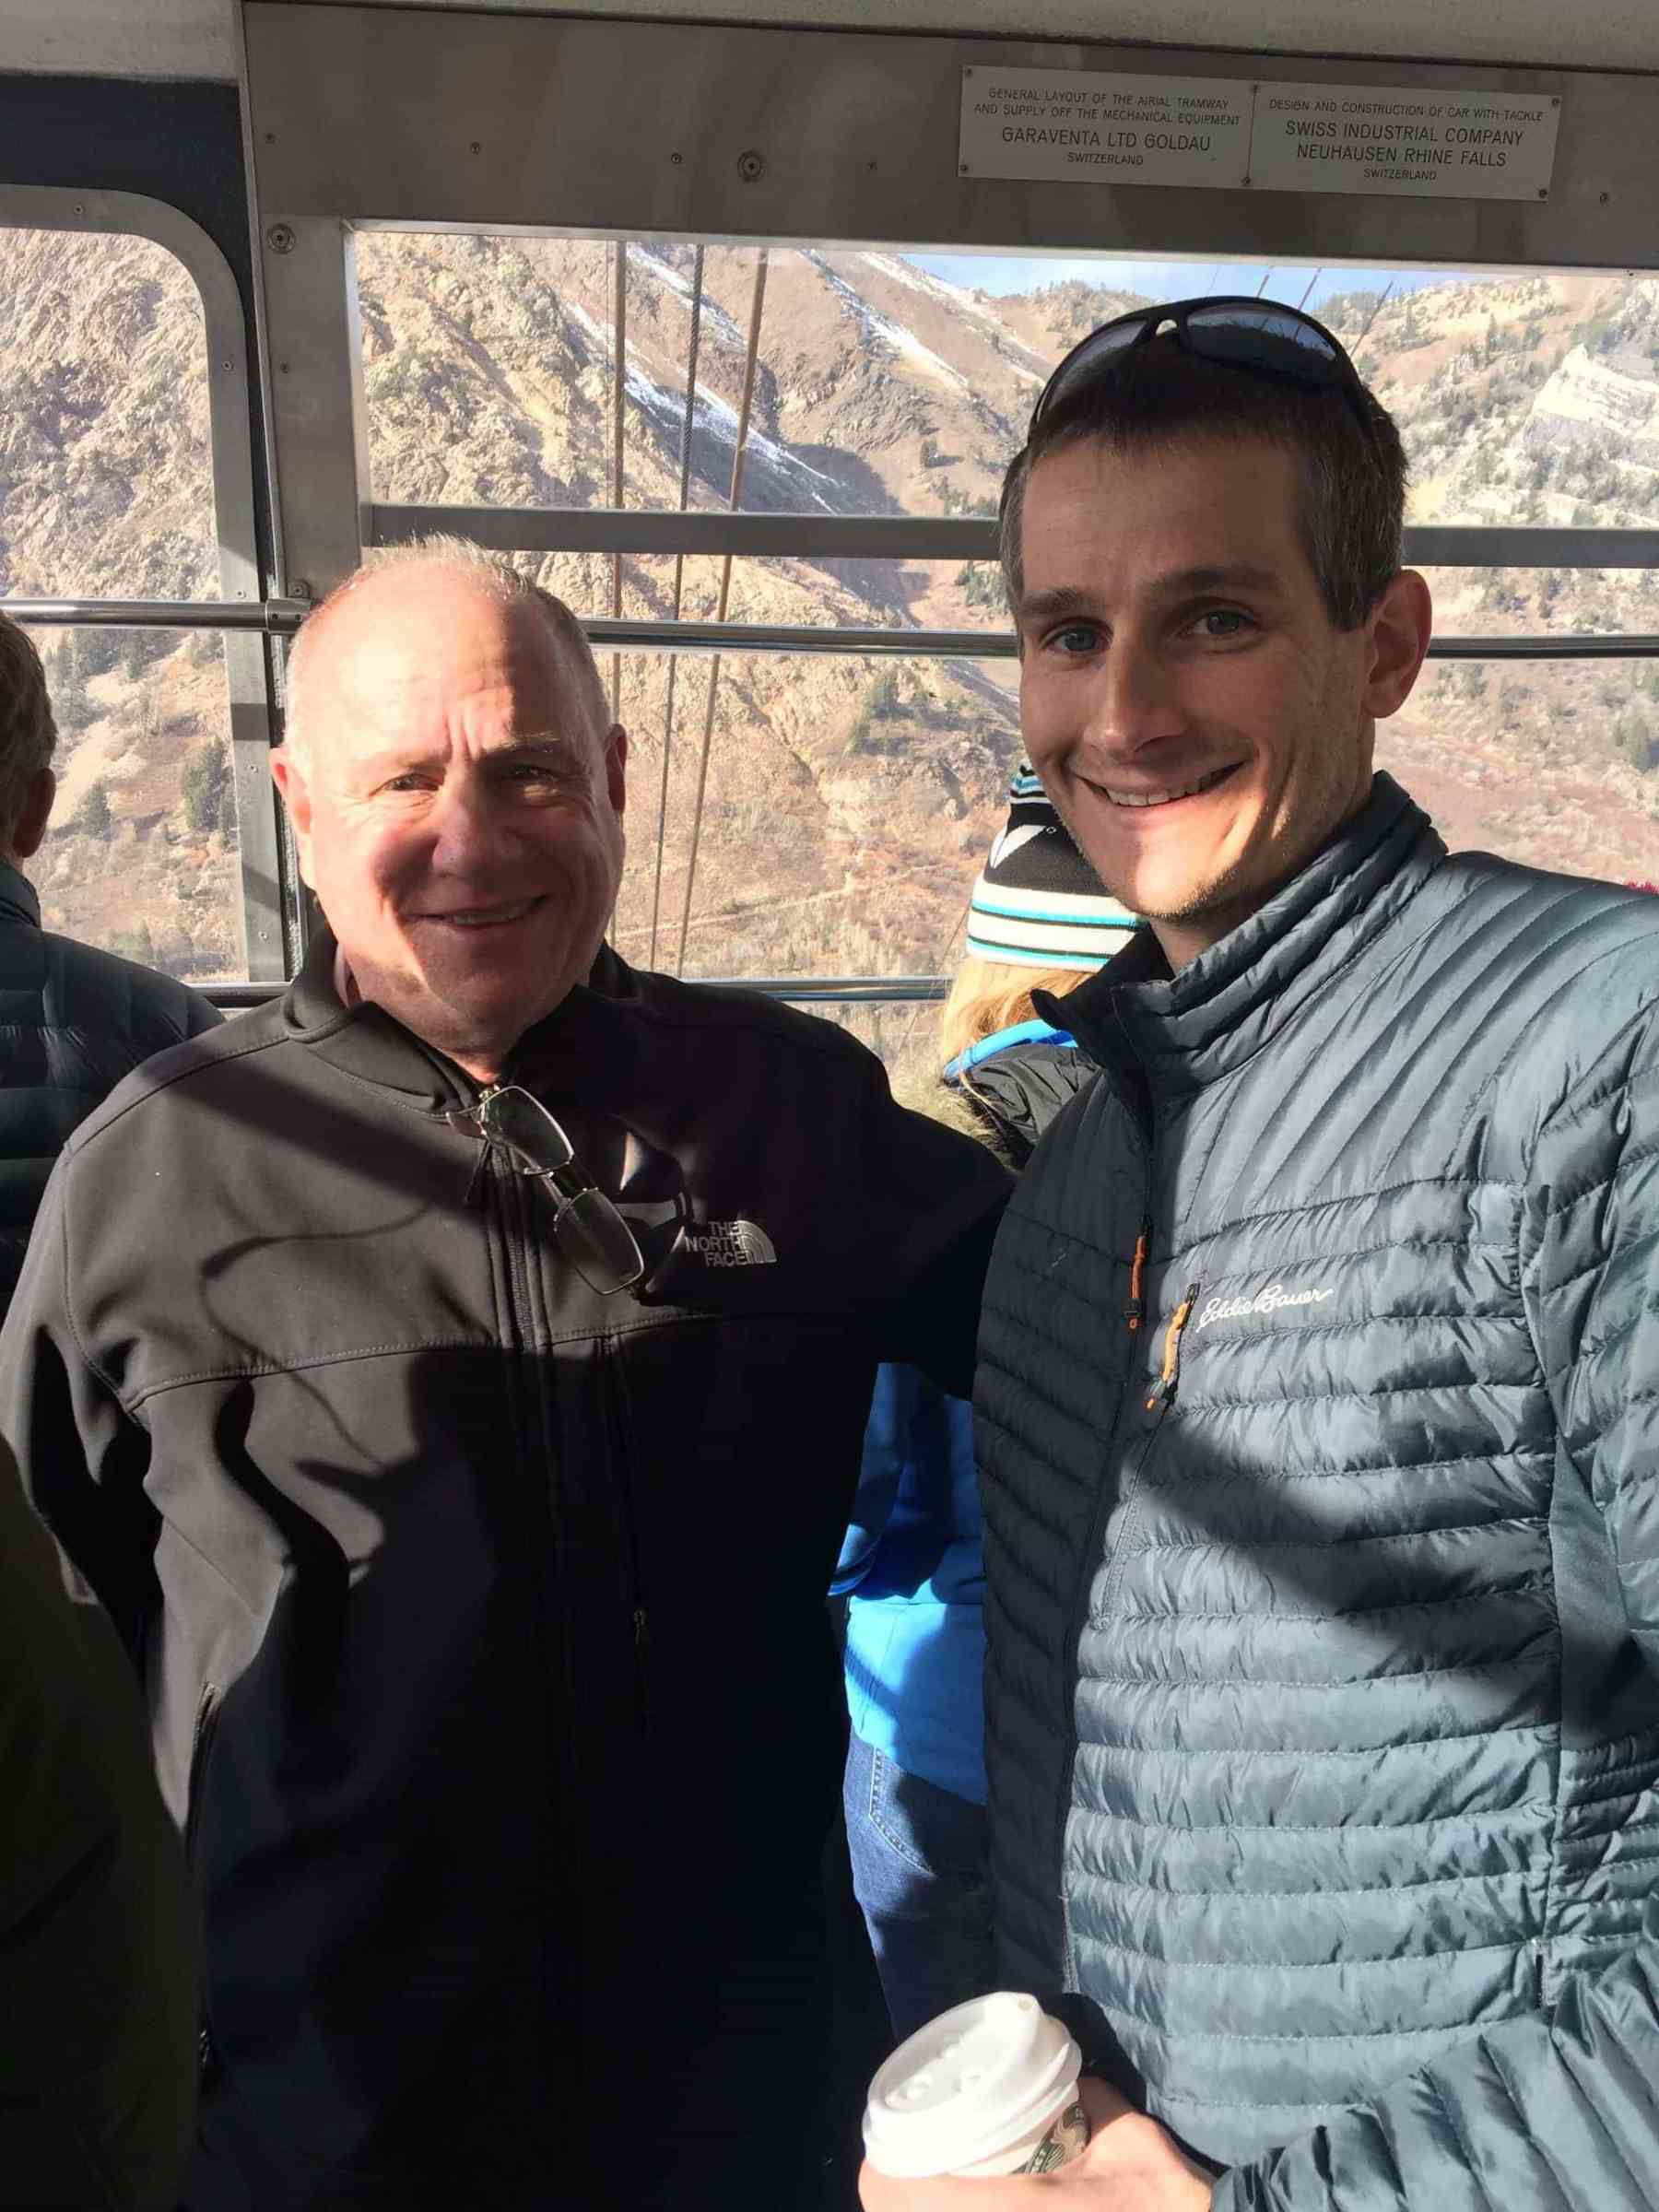 Keith and Mike on the tram at Snowbird